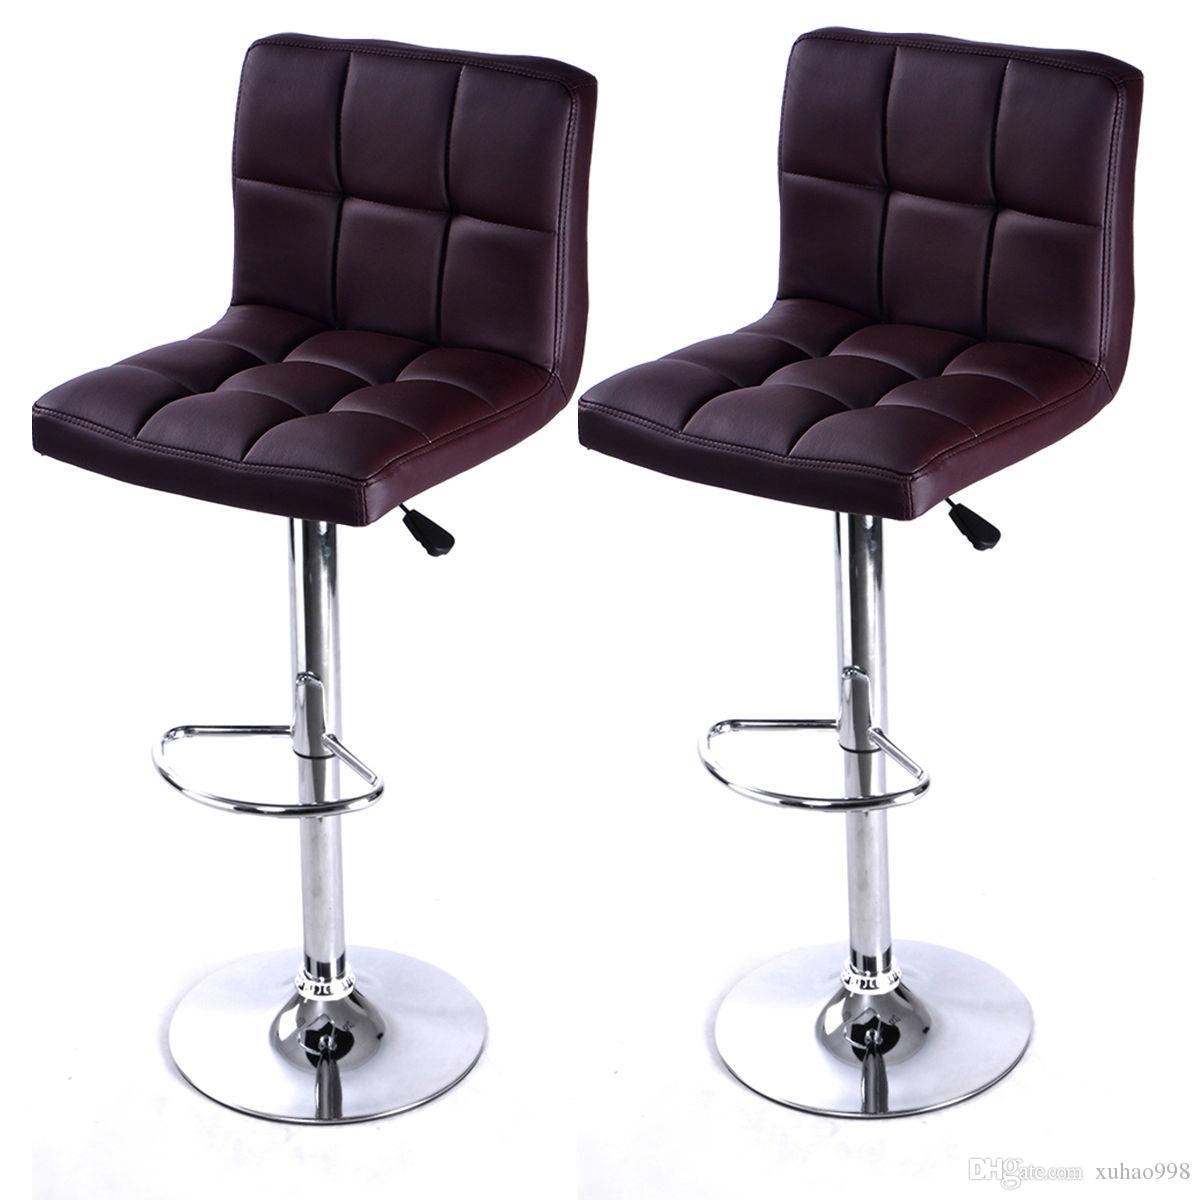 Best Set Of 2 Bar Stool Pu Leather Barstools Chair Adjustable Counter  Swivel Pub New Under $61.31 | Dhgate.Com